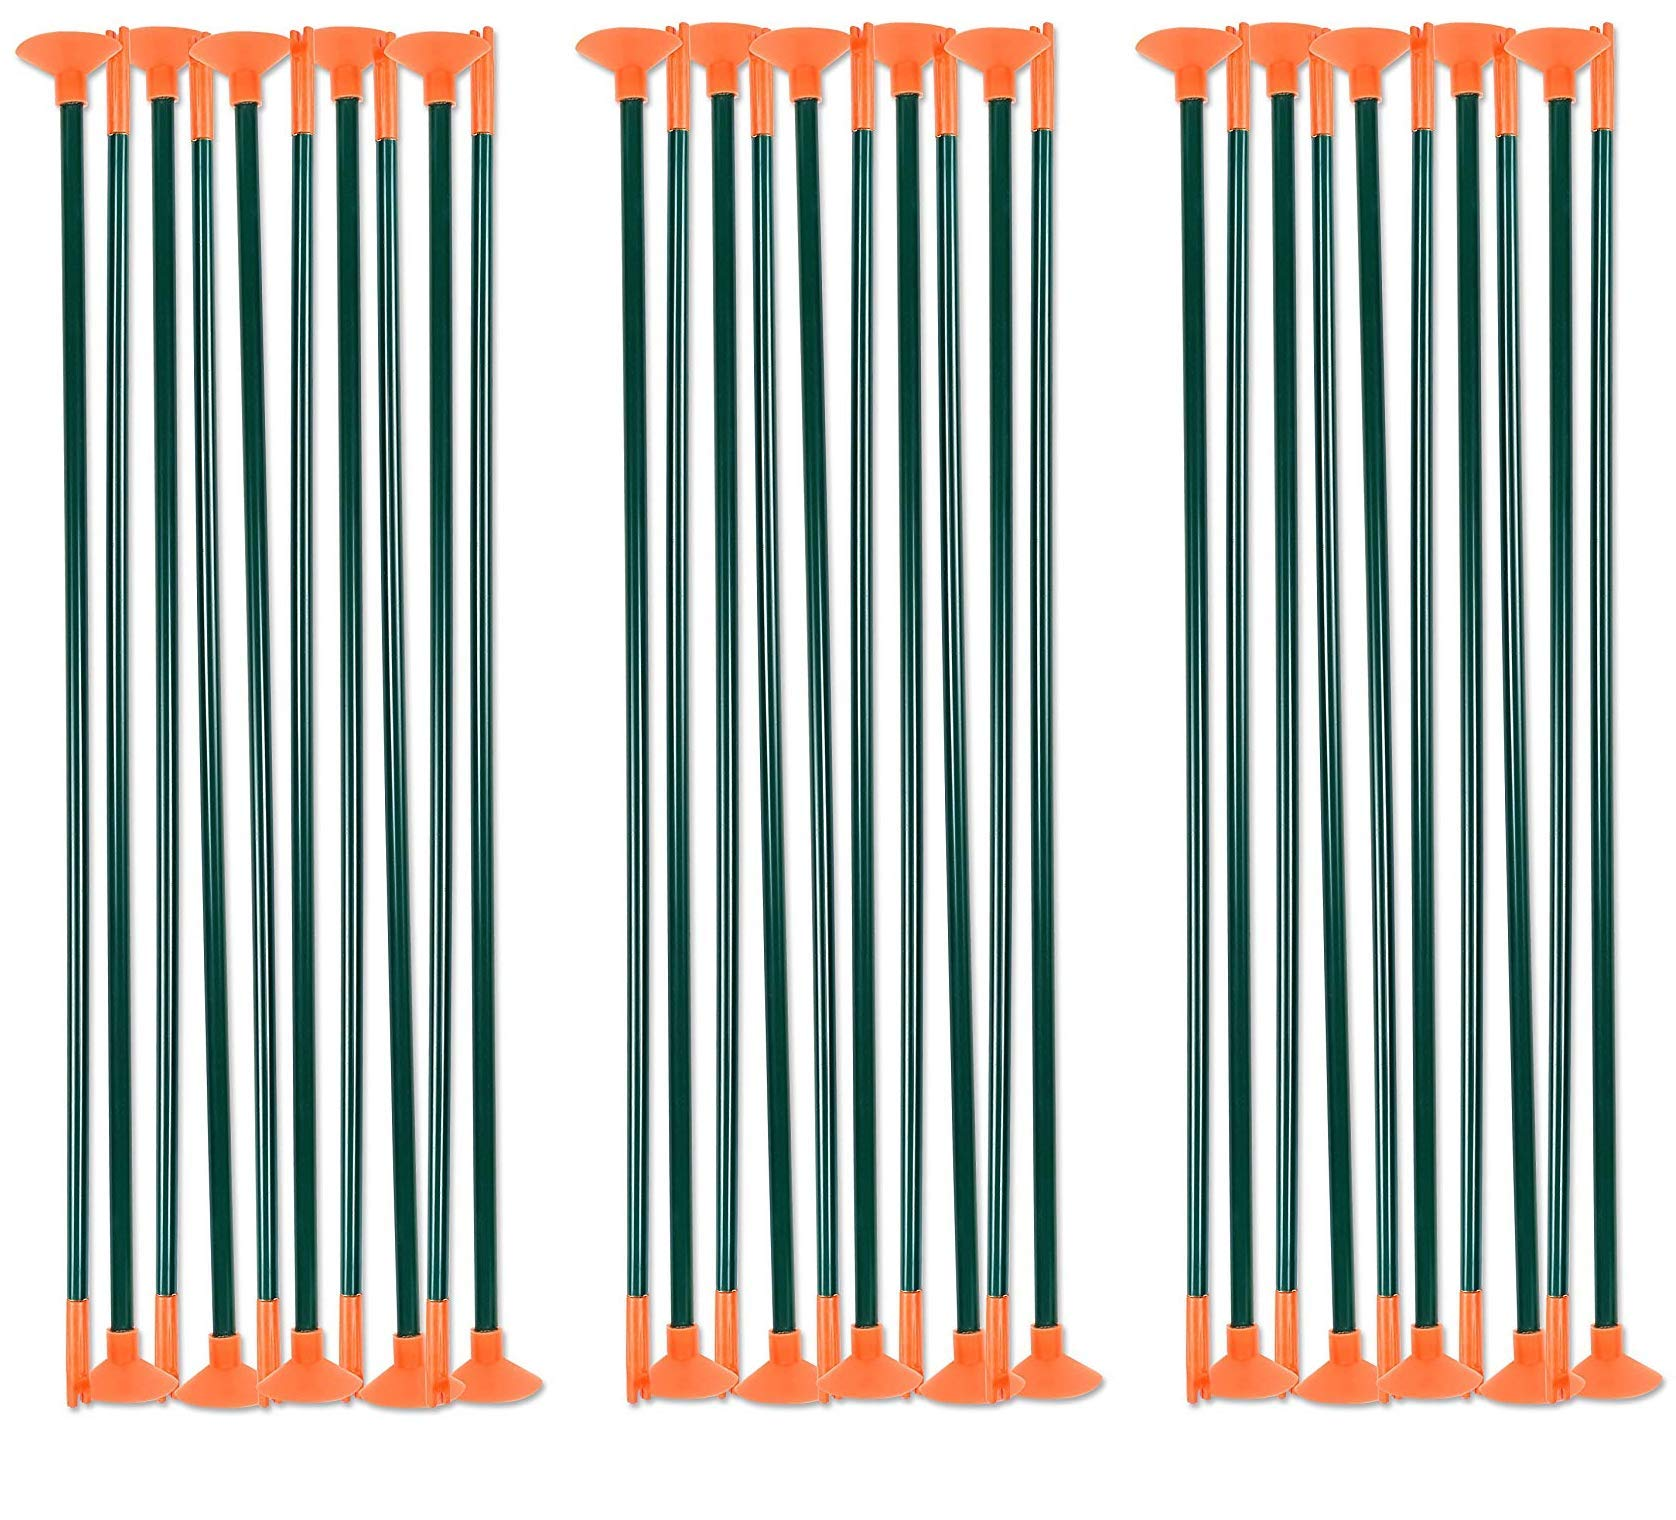 Sunny Days Entertainment Maxx Action Hunting Series 10-Pack Replacement Arrows (Thrее Расk)